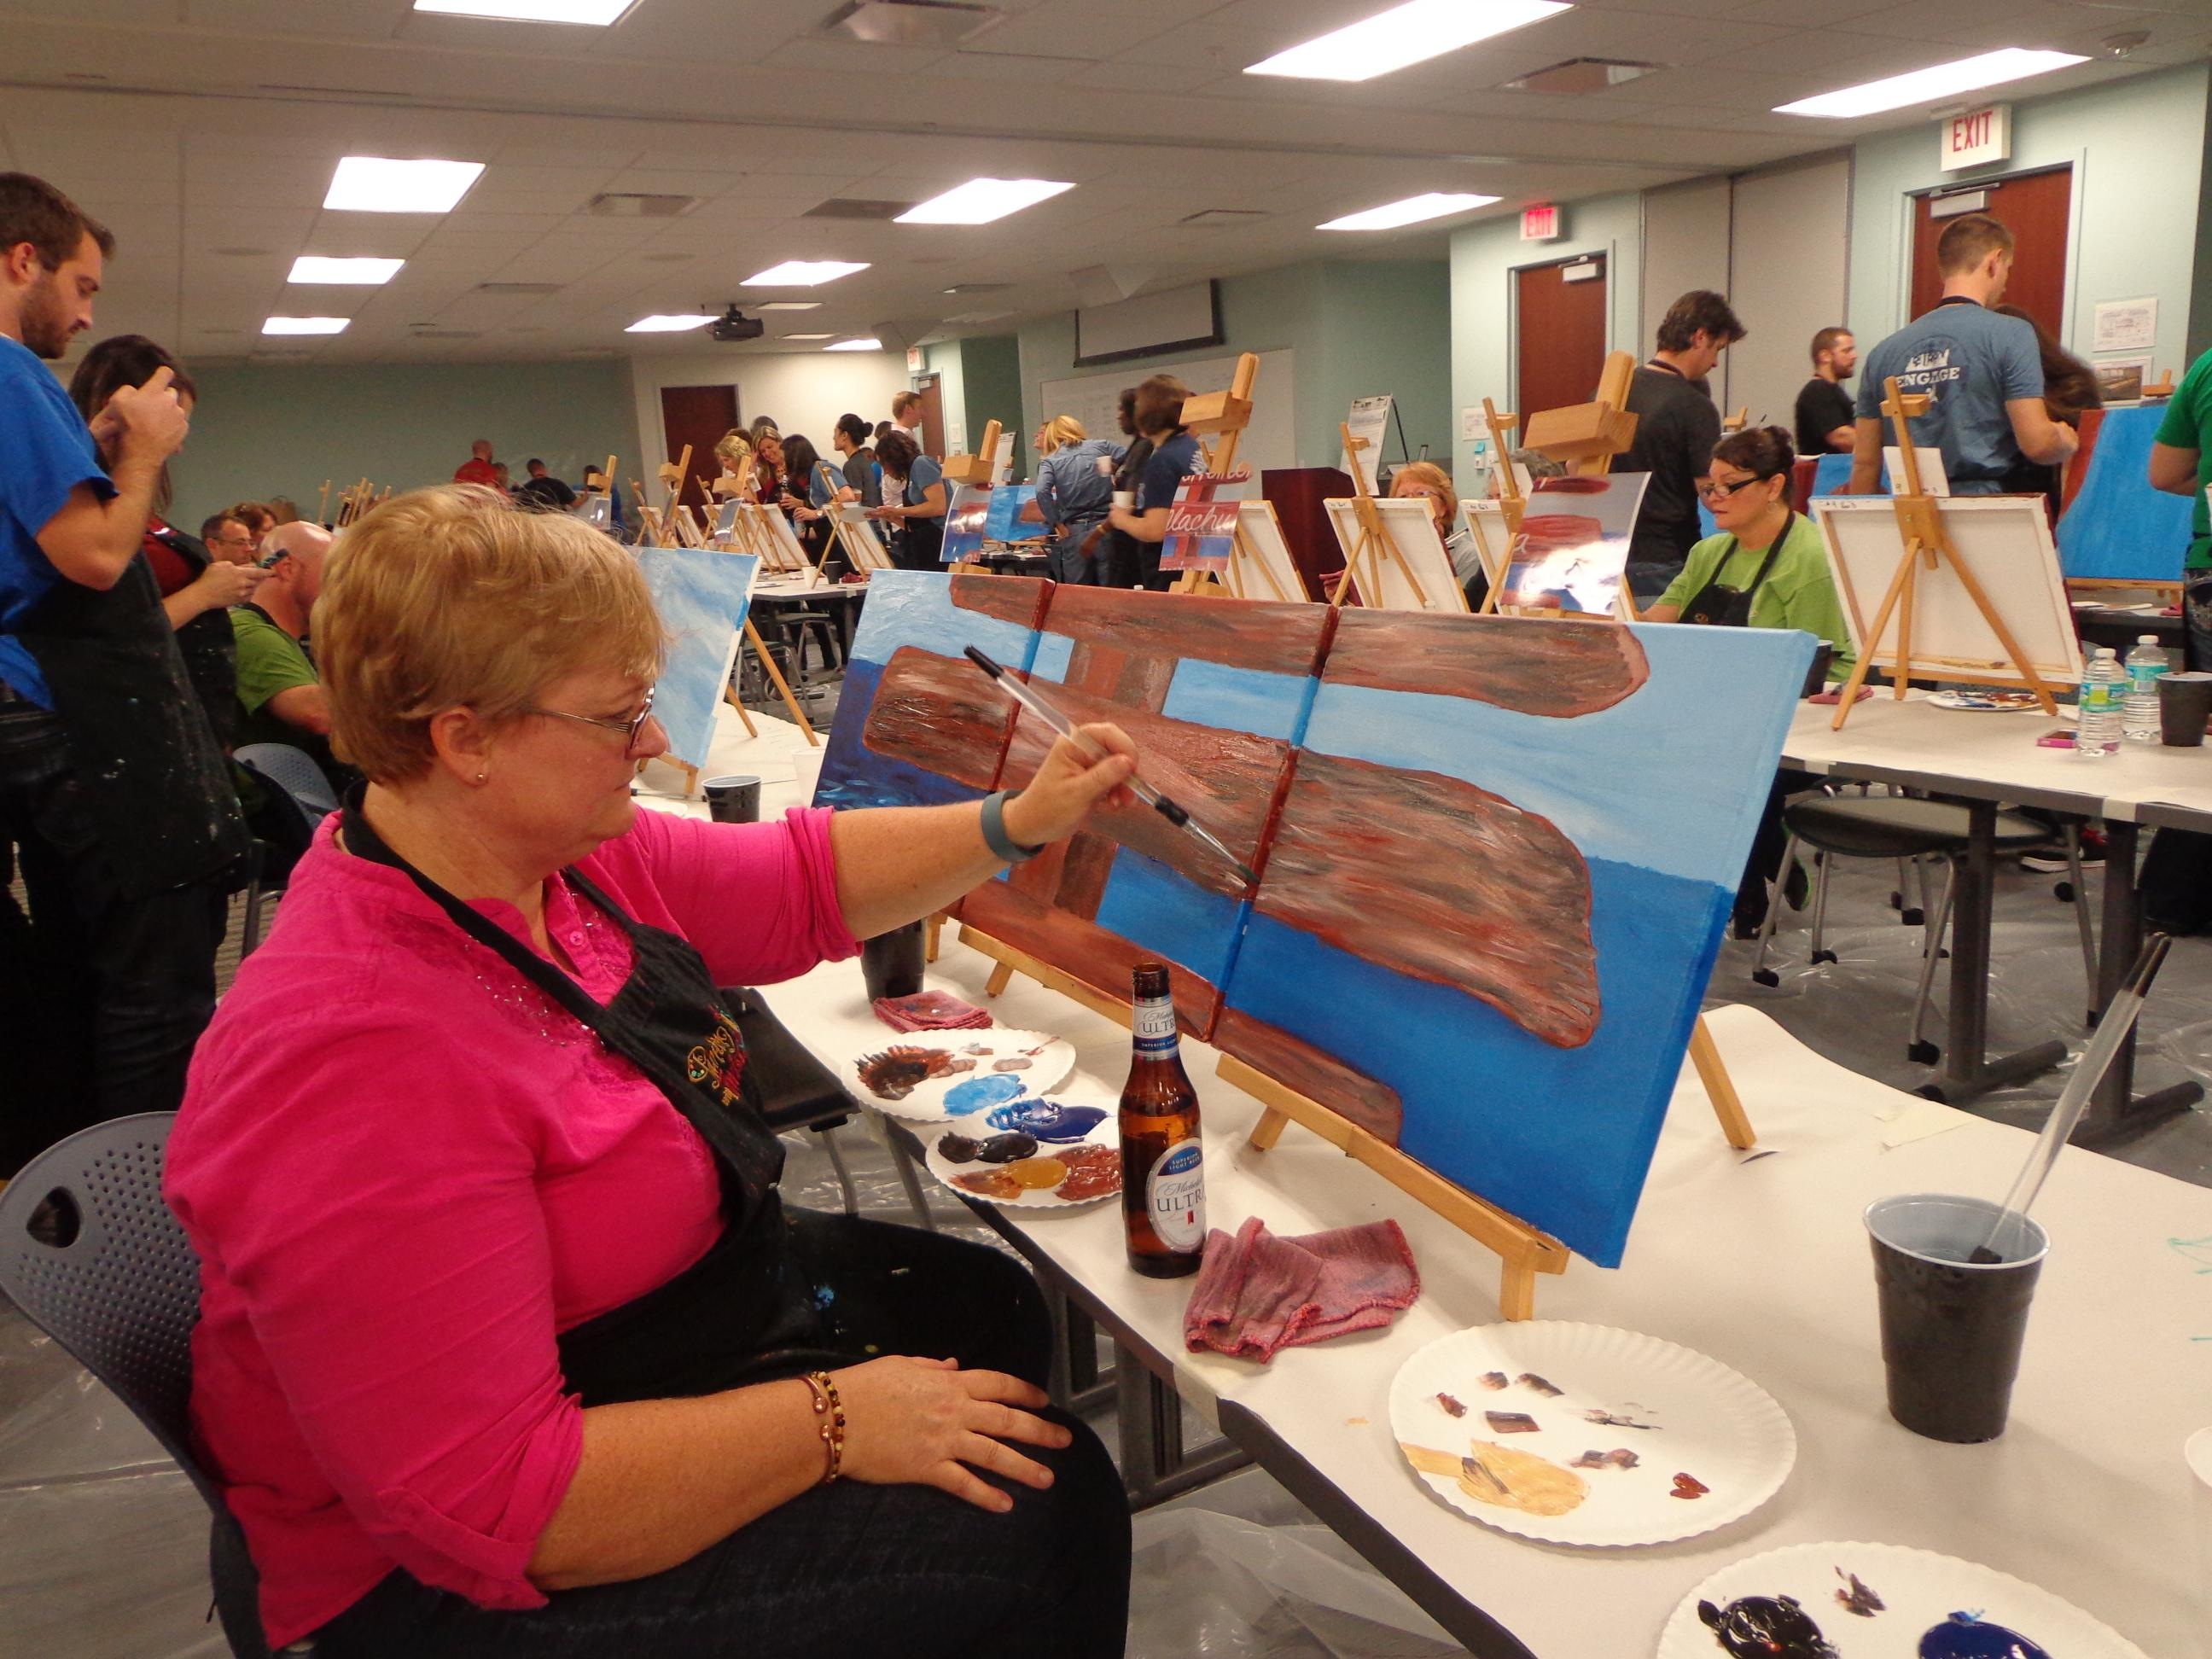 Painting with a twist in tampa fl 33626 for Michaels crafts hours of operation